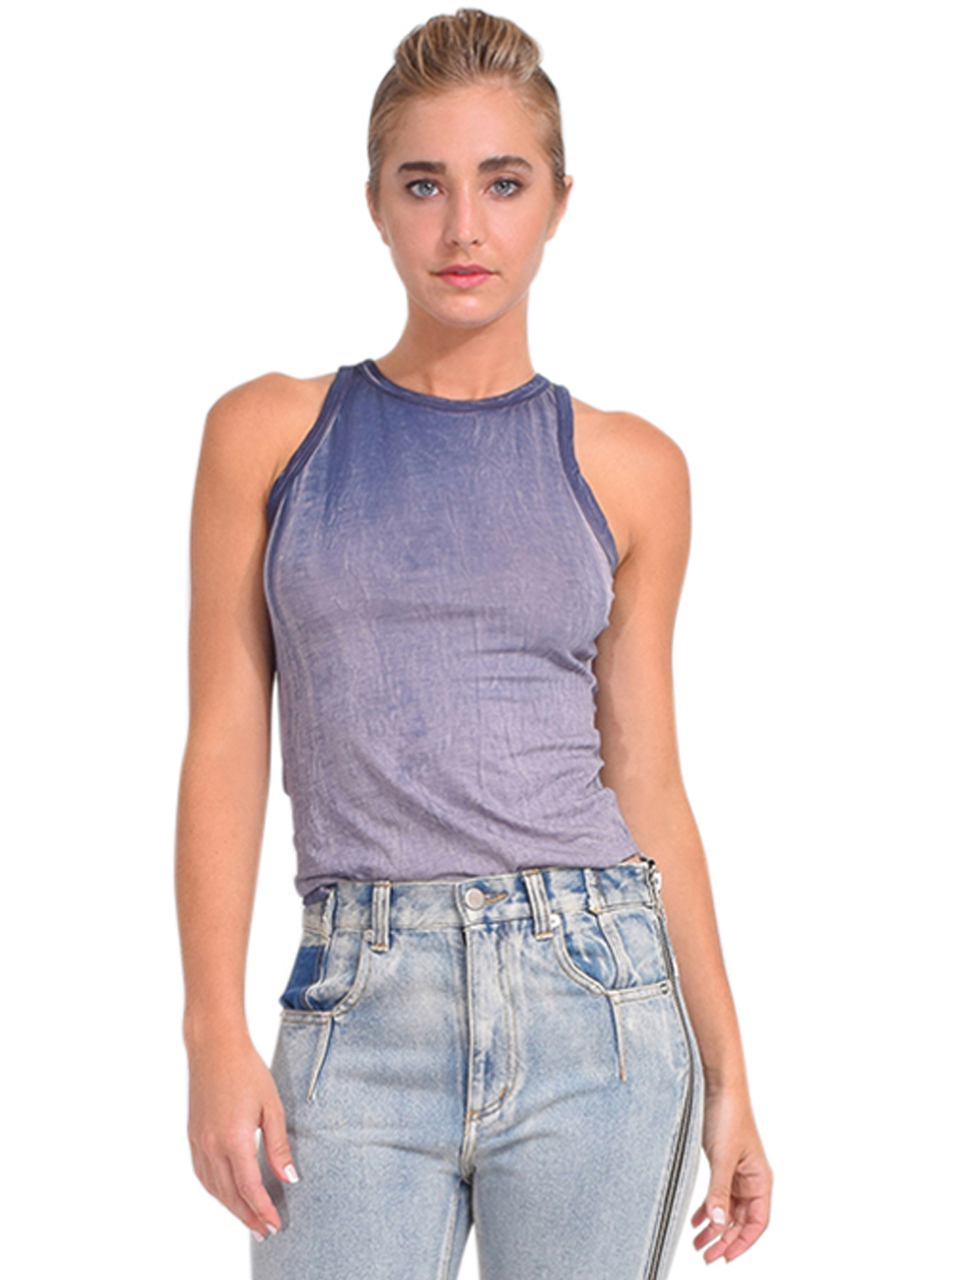 Cotton Citizen Standard Tank in Navy Mix Front View